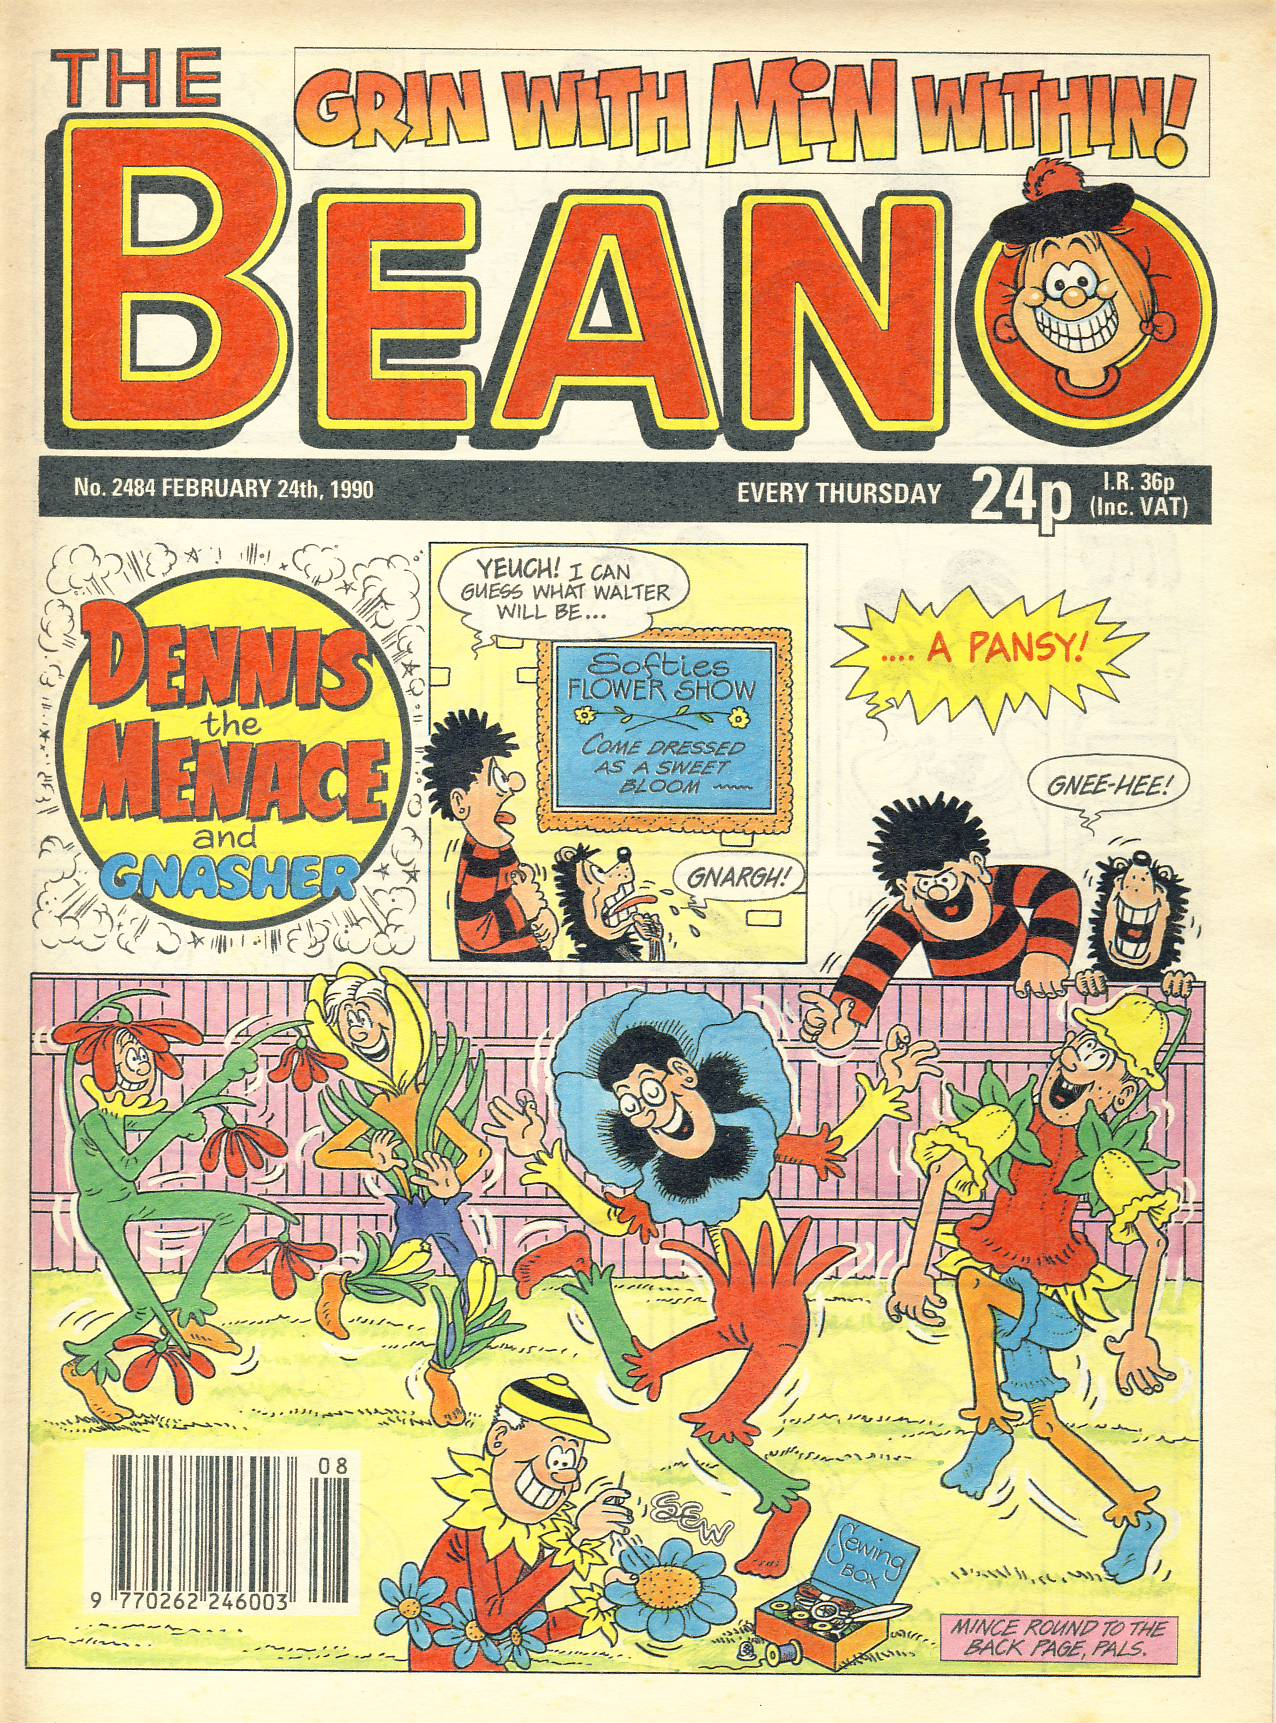 1990 February 24th BEANO vintage comic Good Gift Christmas Present Birthday Anniversary ref303a pre-owned item in good read condition.